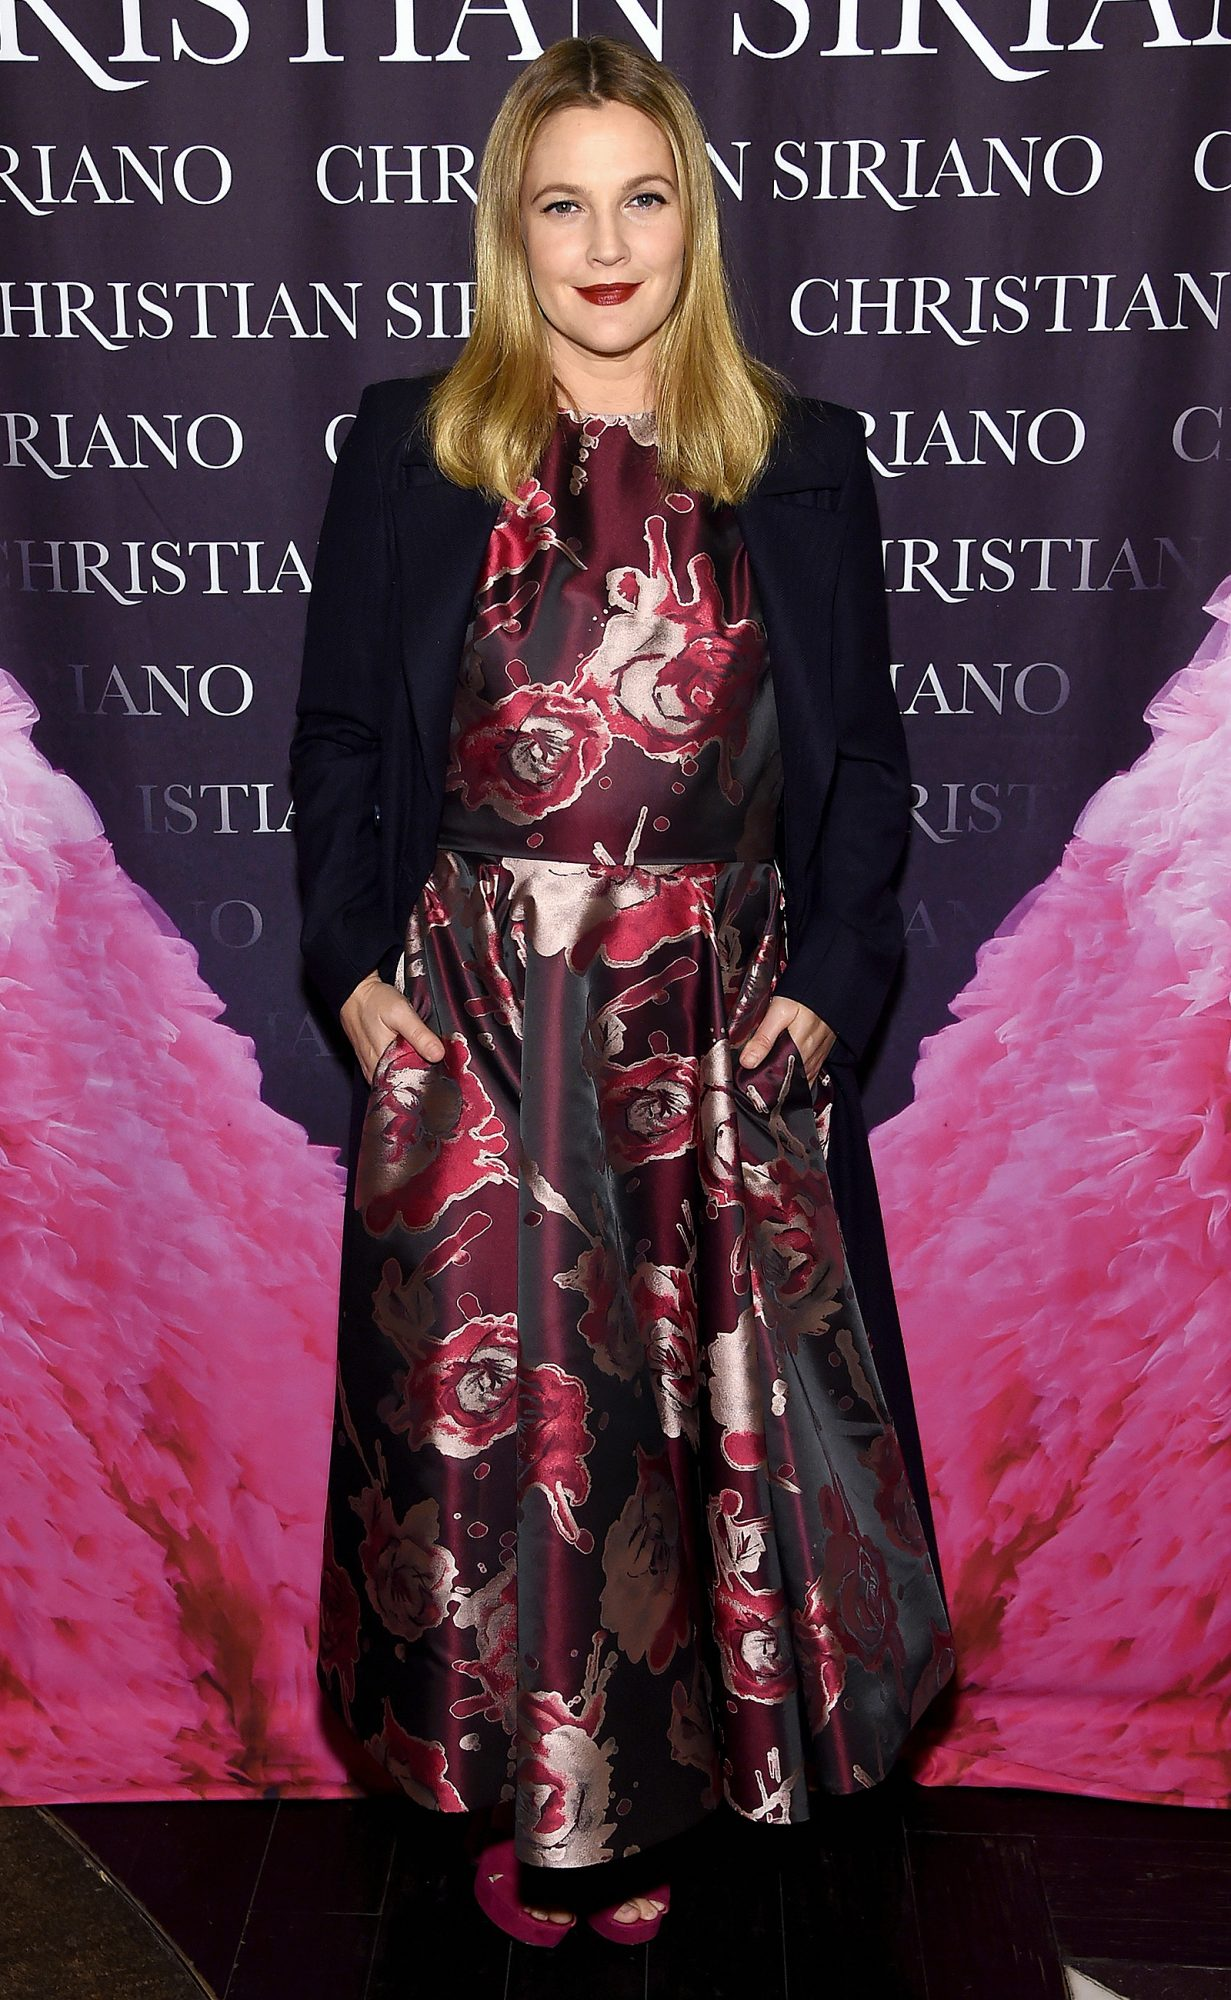 """Christian Siriano Celebrates The Release Of His Book """"Dresses To Dream About"""" At The Rizzoli Flagship Store In New York"""